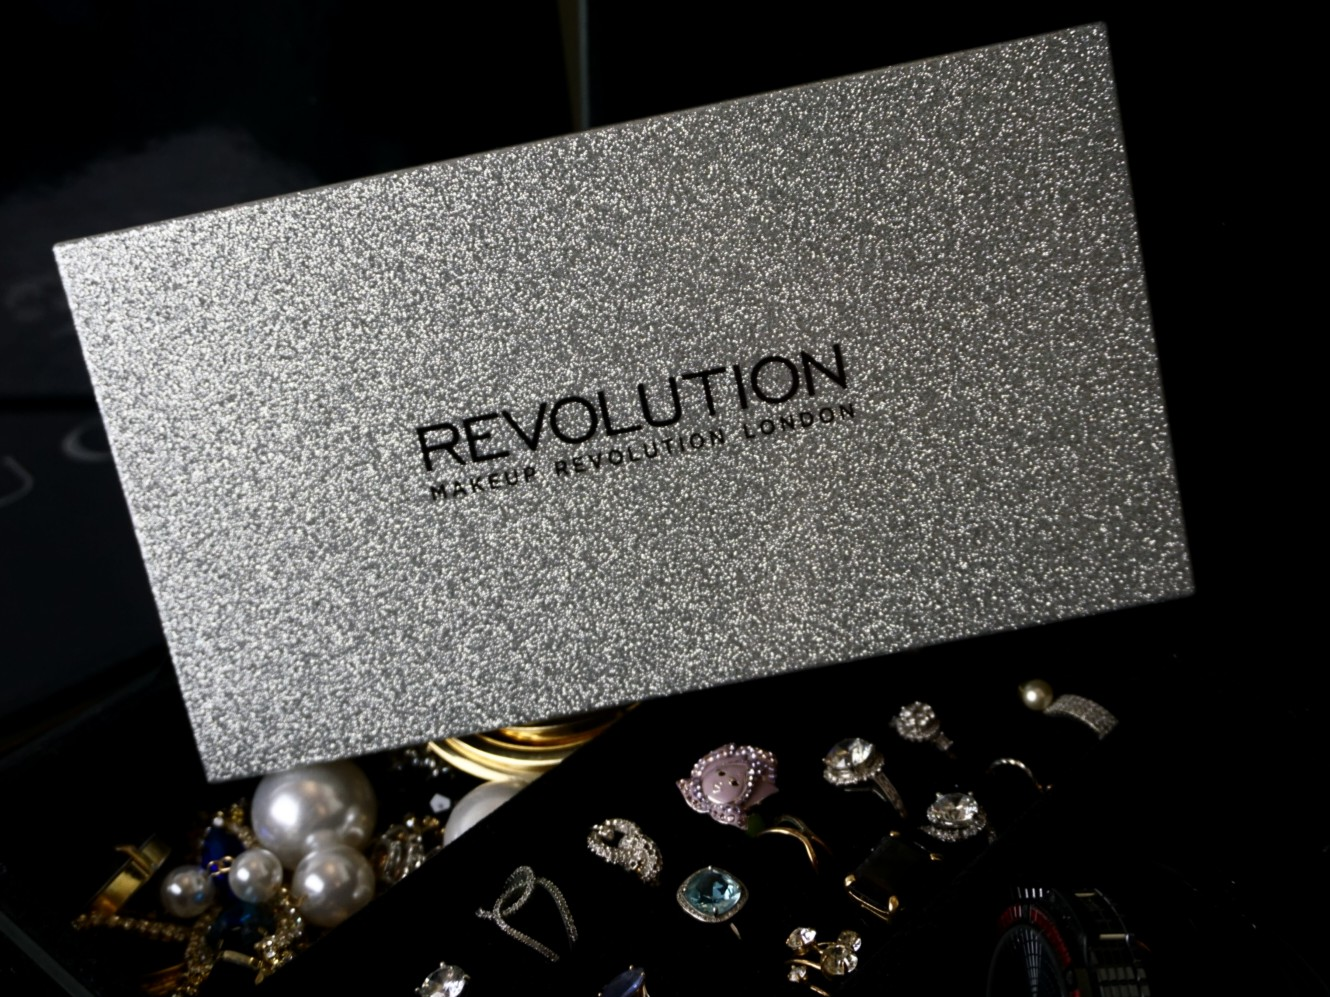 MAKEUP REVOLUTION PALETTE LIFE ON THE DANCE FLOOR AFTER PARTY EYESHADOW PALETTE SWATCHES AND LOOKS